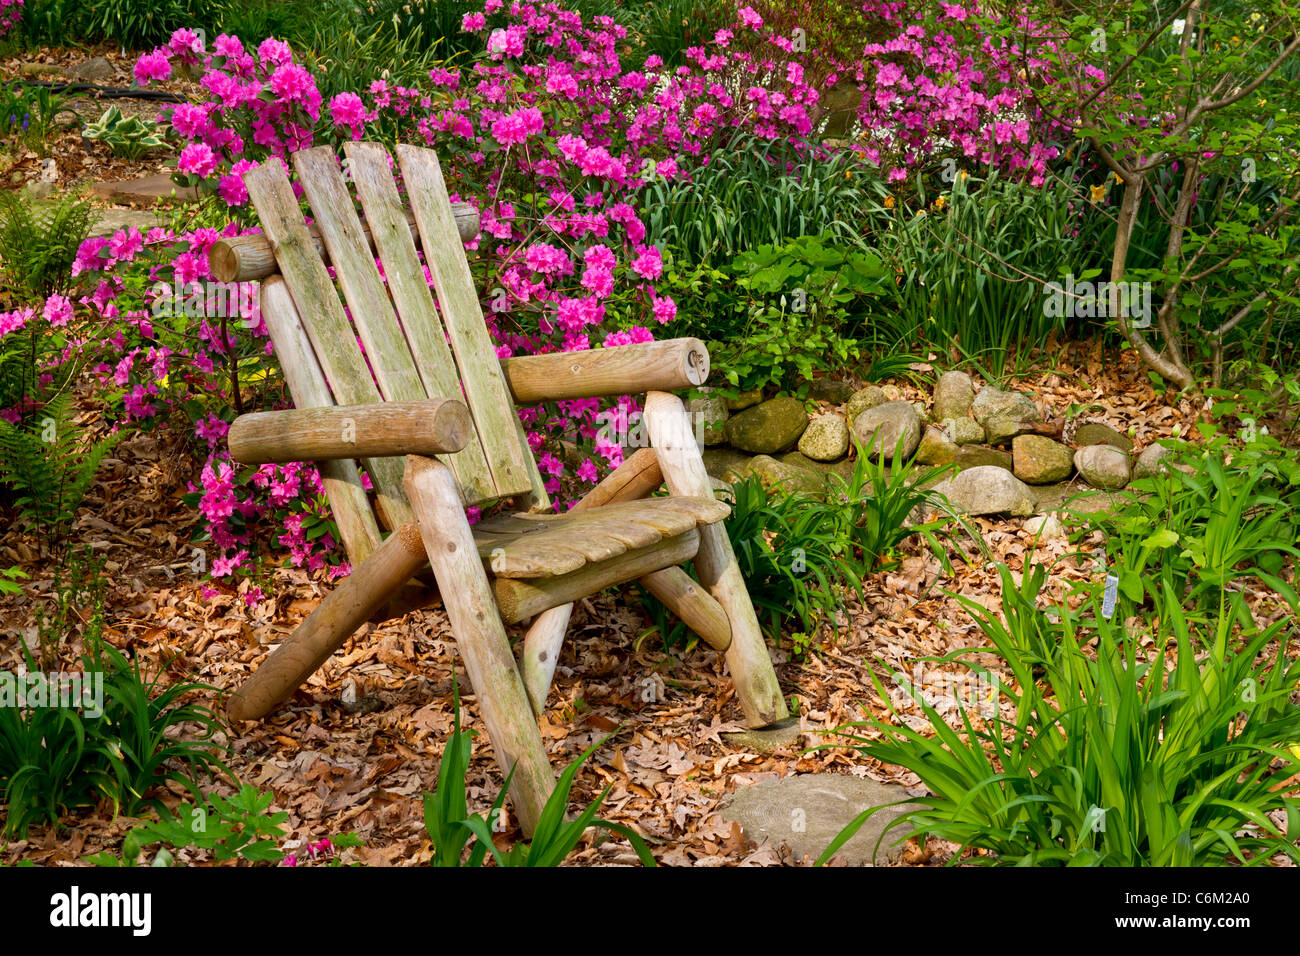 An empty lawn chair with rhododendron flowers in the Stott garden near Goshen, Indiana, USA. - Stock Image